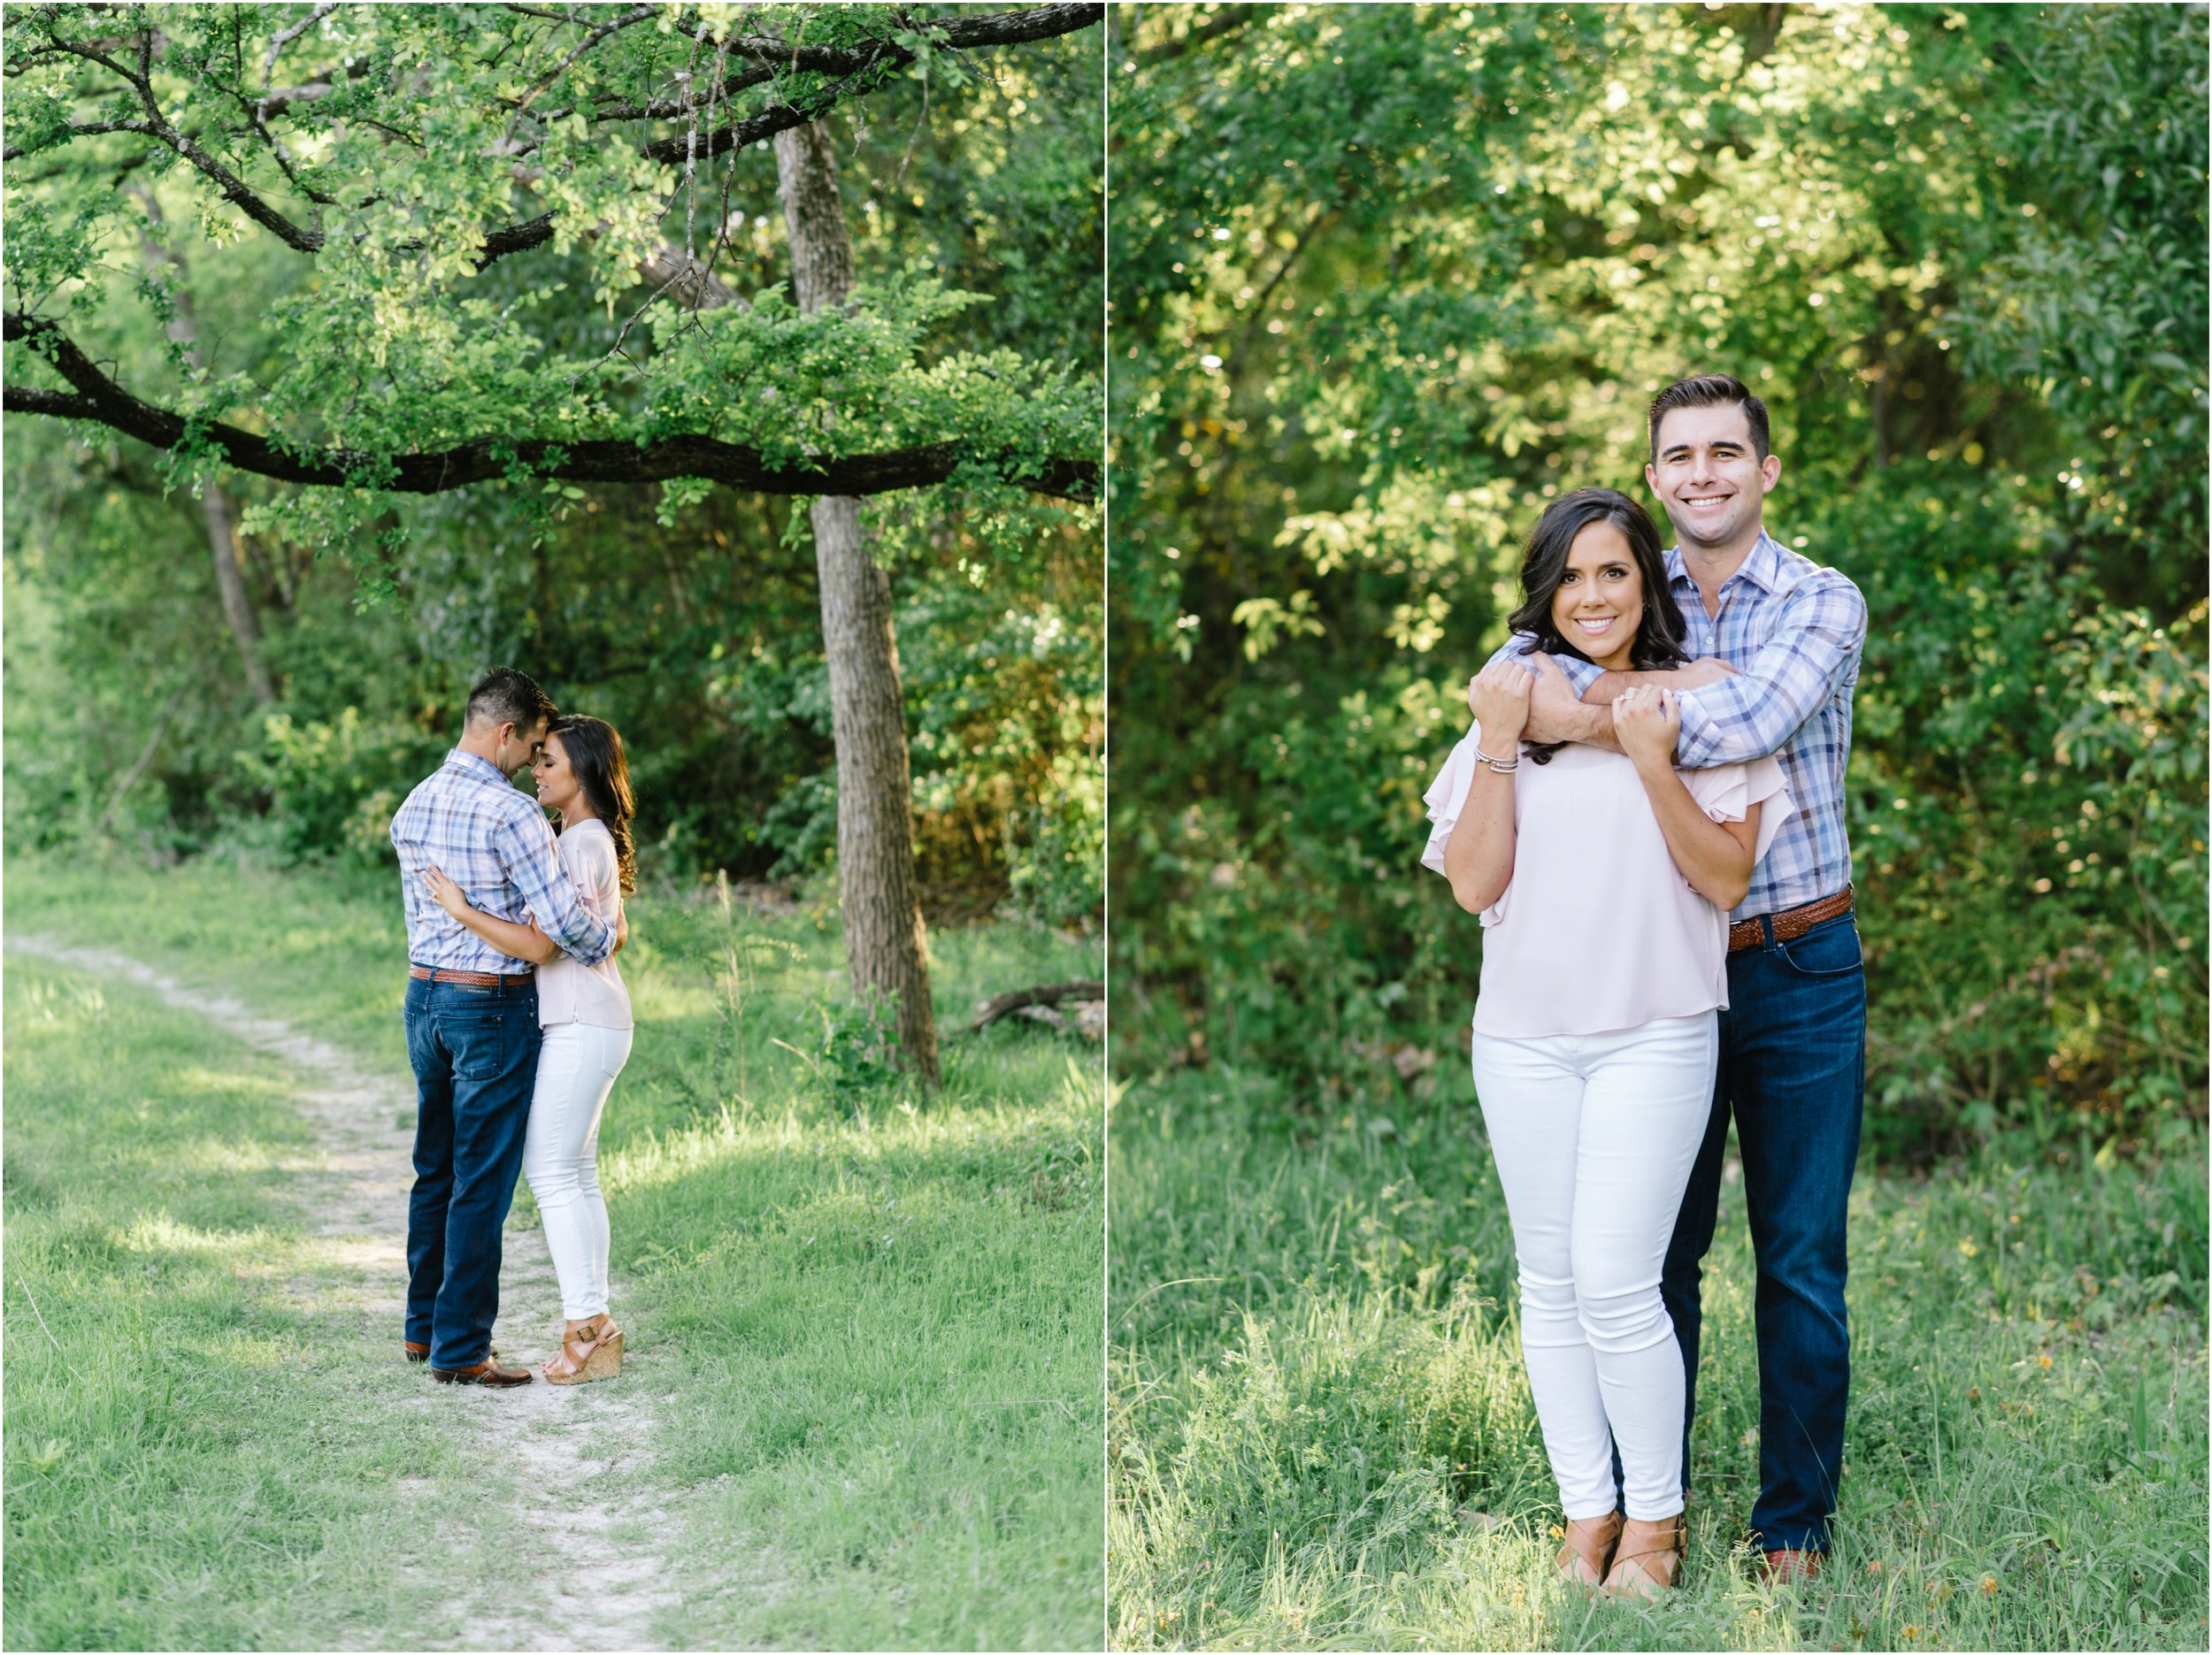 dallasweddingphotographer_texasweddingphotographer_texasweddingphotographers_dallasweddingphotographer_mattandjulieweddings_0852.jpg